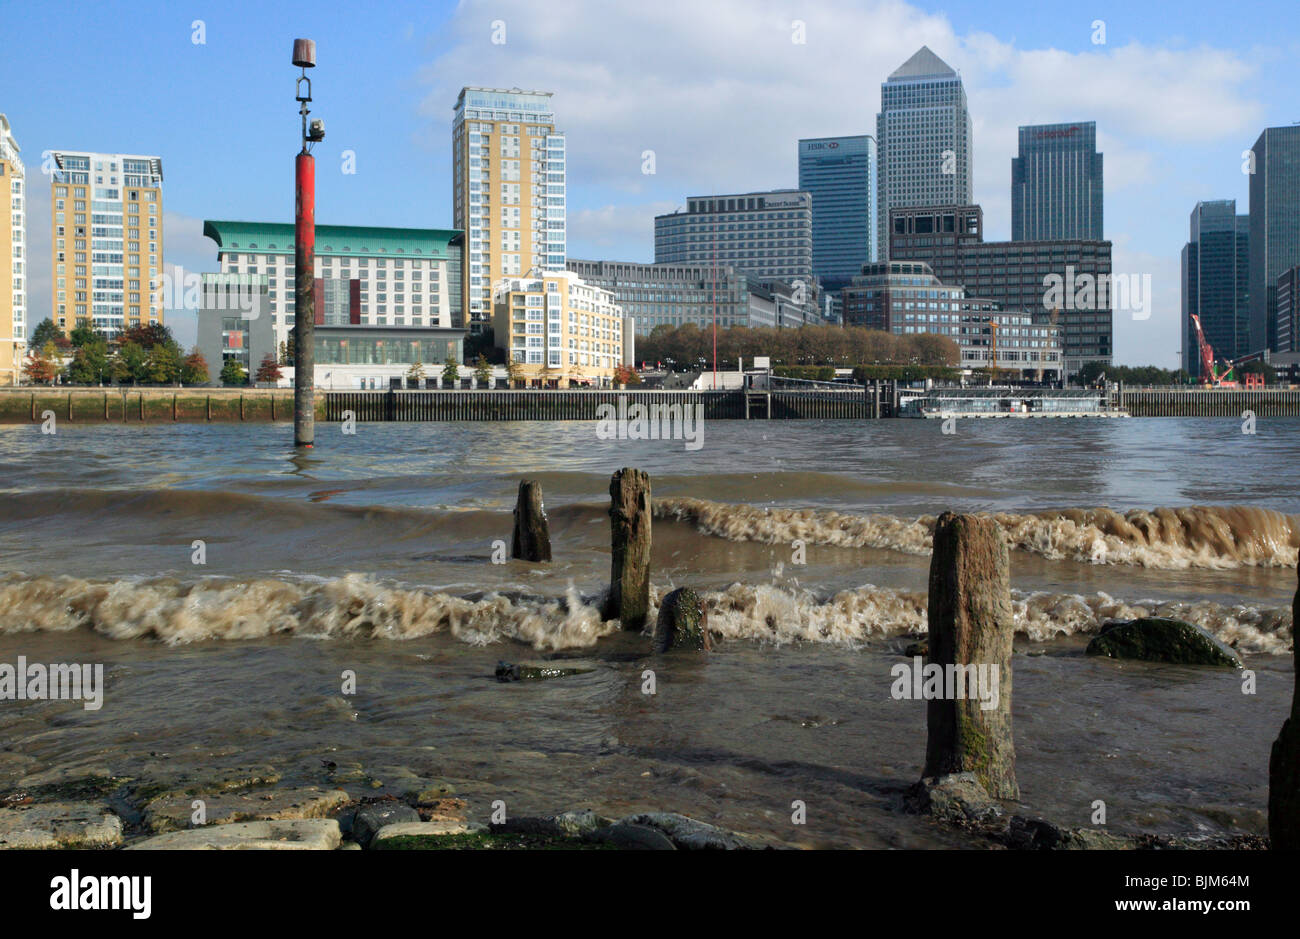 View of Canary Wharf, taklen from the Thames beach at low tide, Rotherhithe, South East London Stock Photo